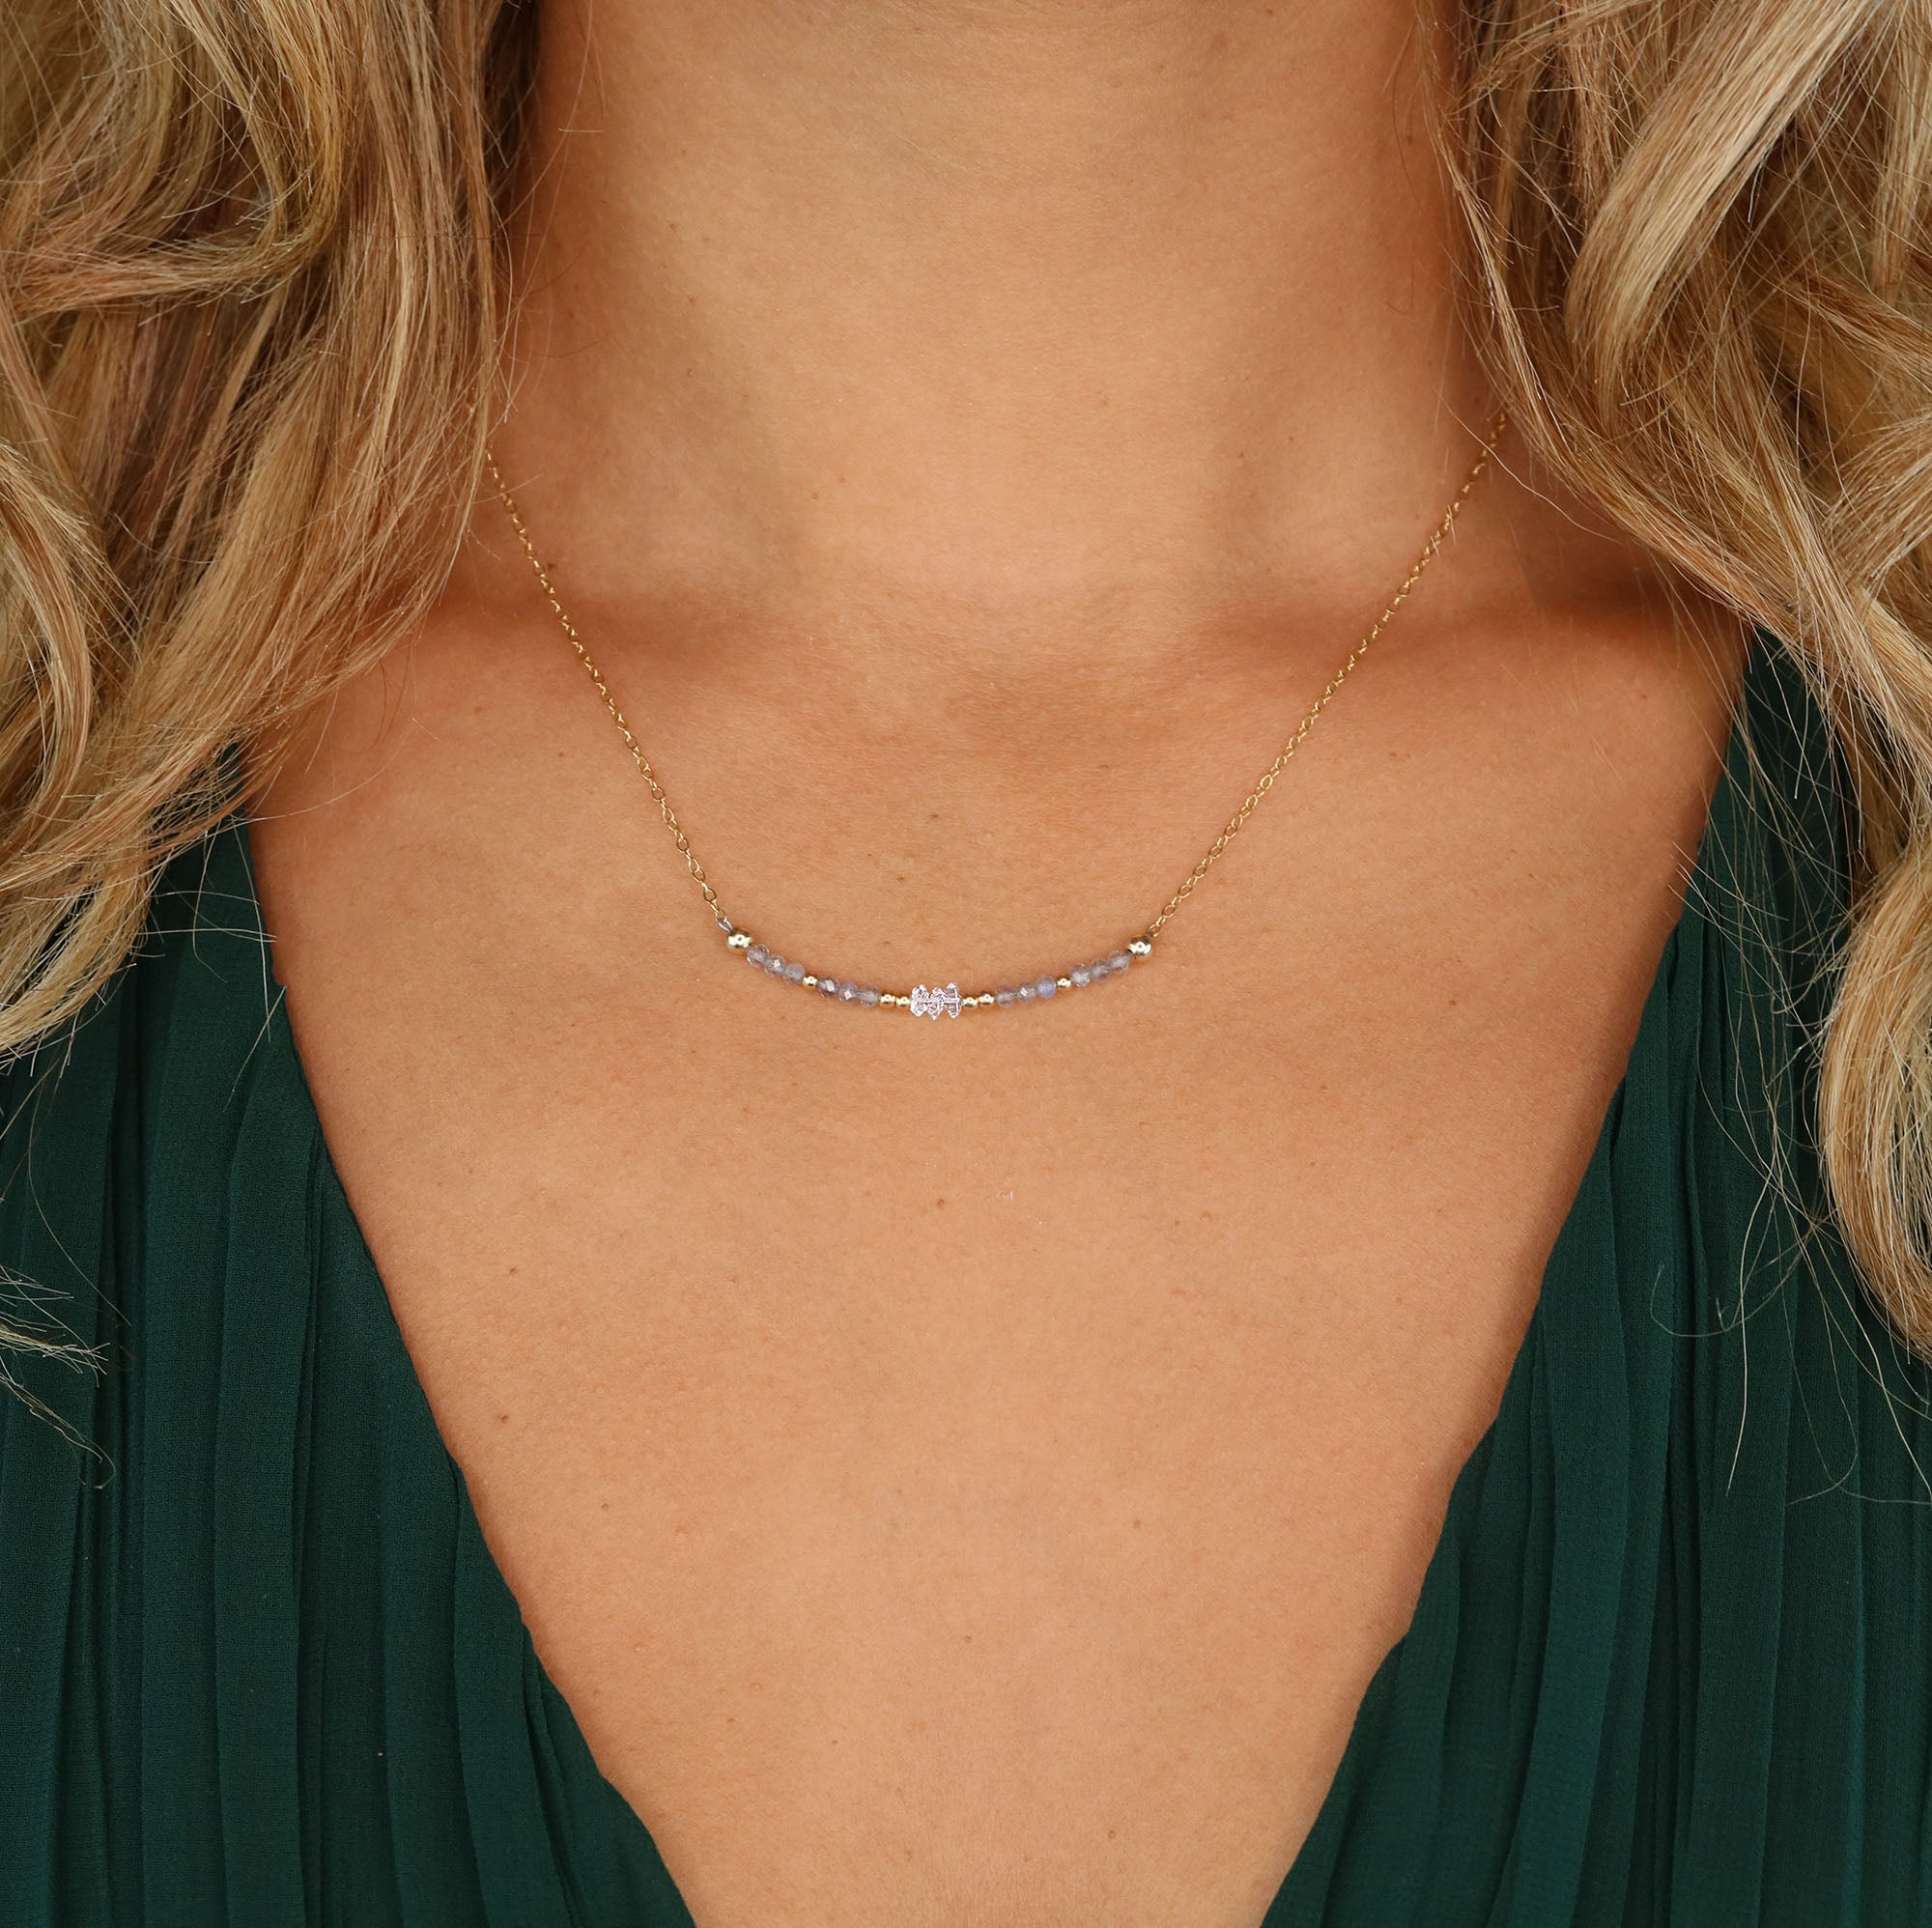 Visionary Necklace | Herkimer Diamond and Labradorite